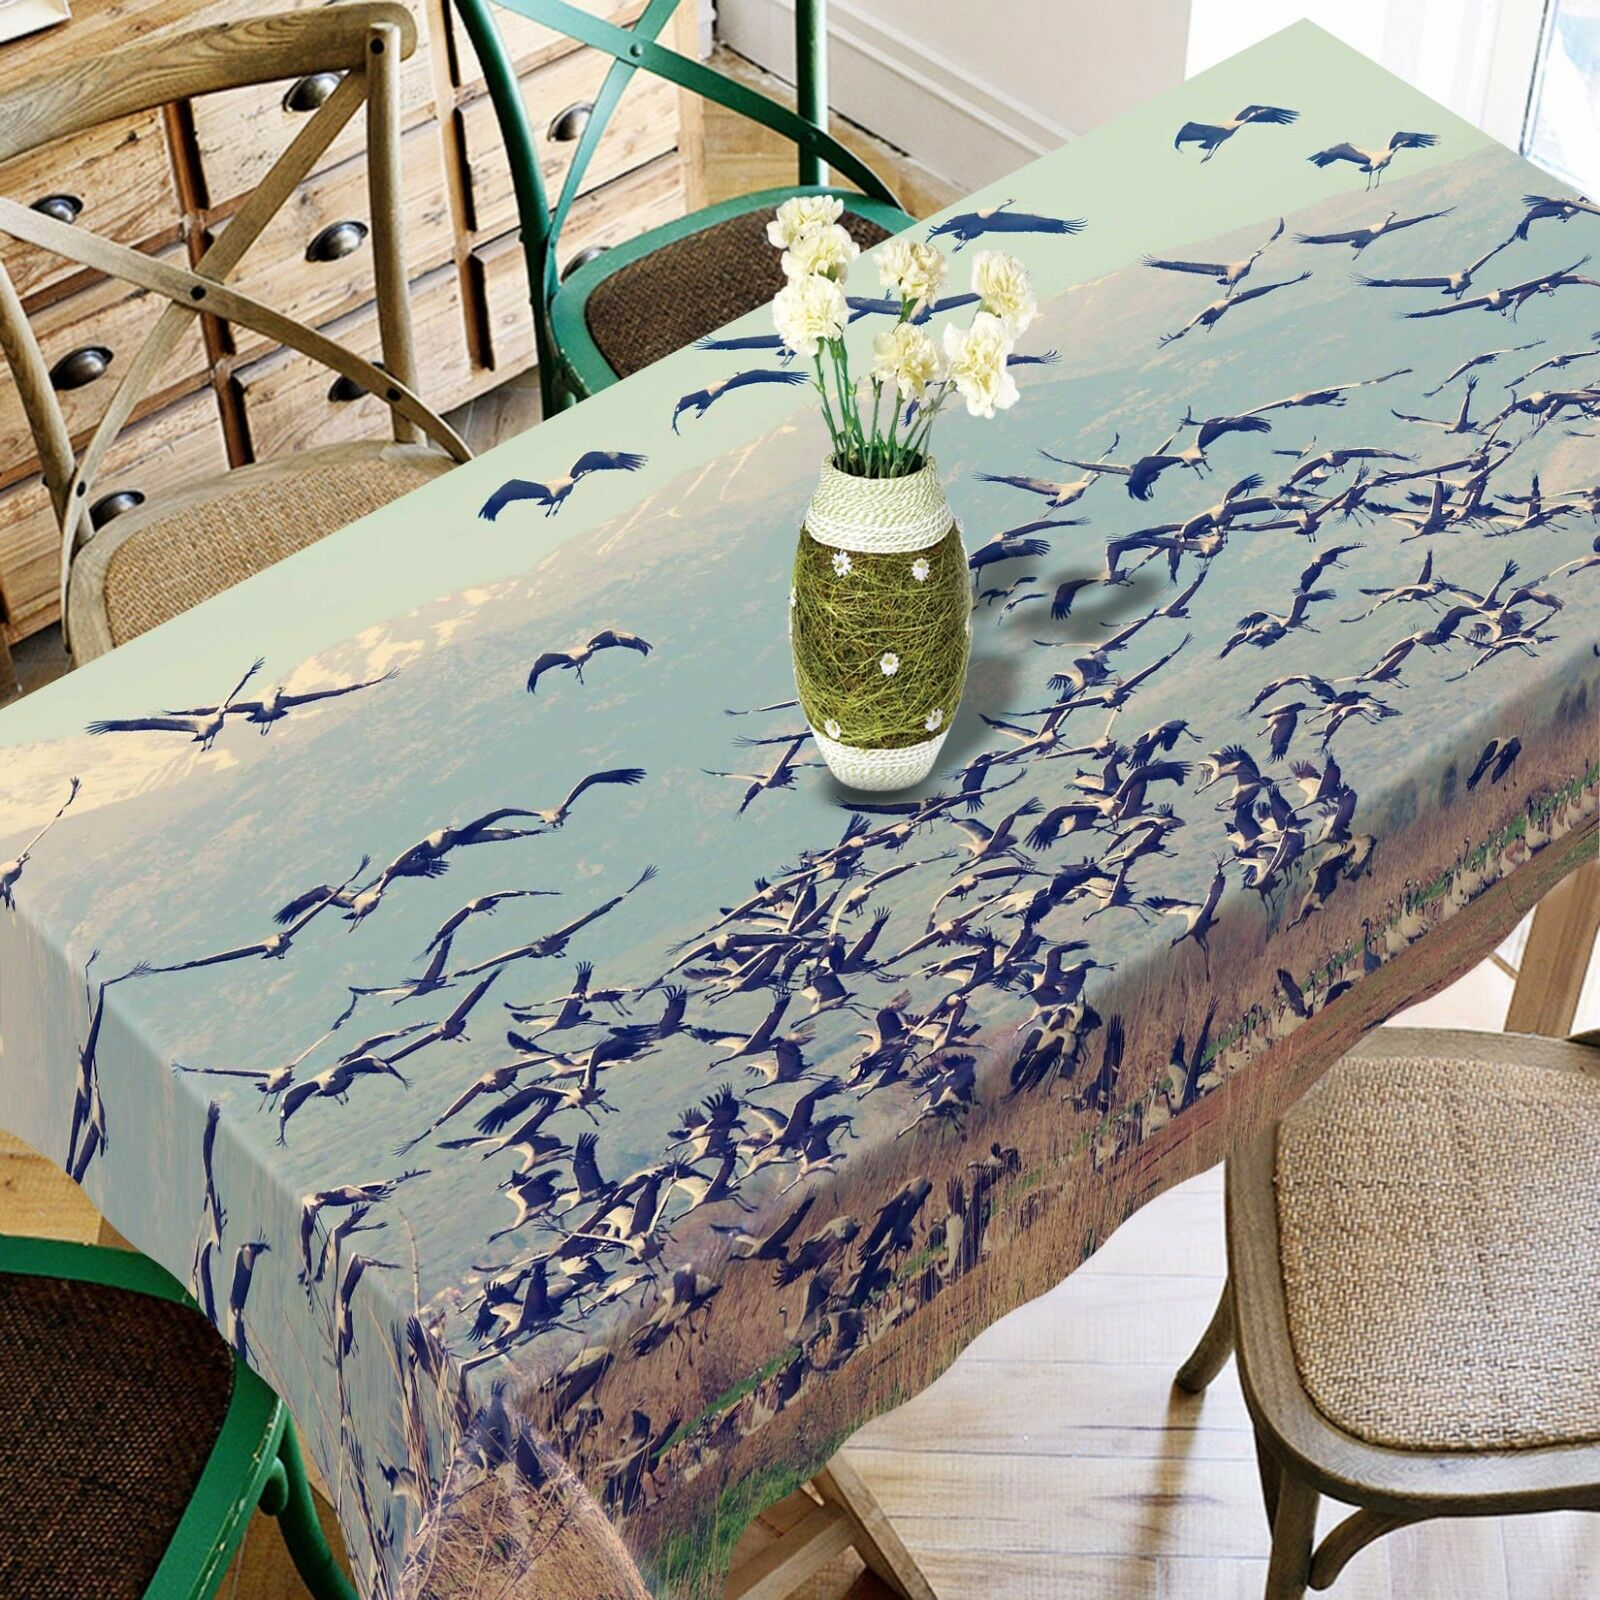 3D Migratory Bird Tablecloth Table Cover Cloth Birthday Party Event AJ WALLPAPER